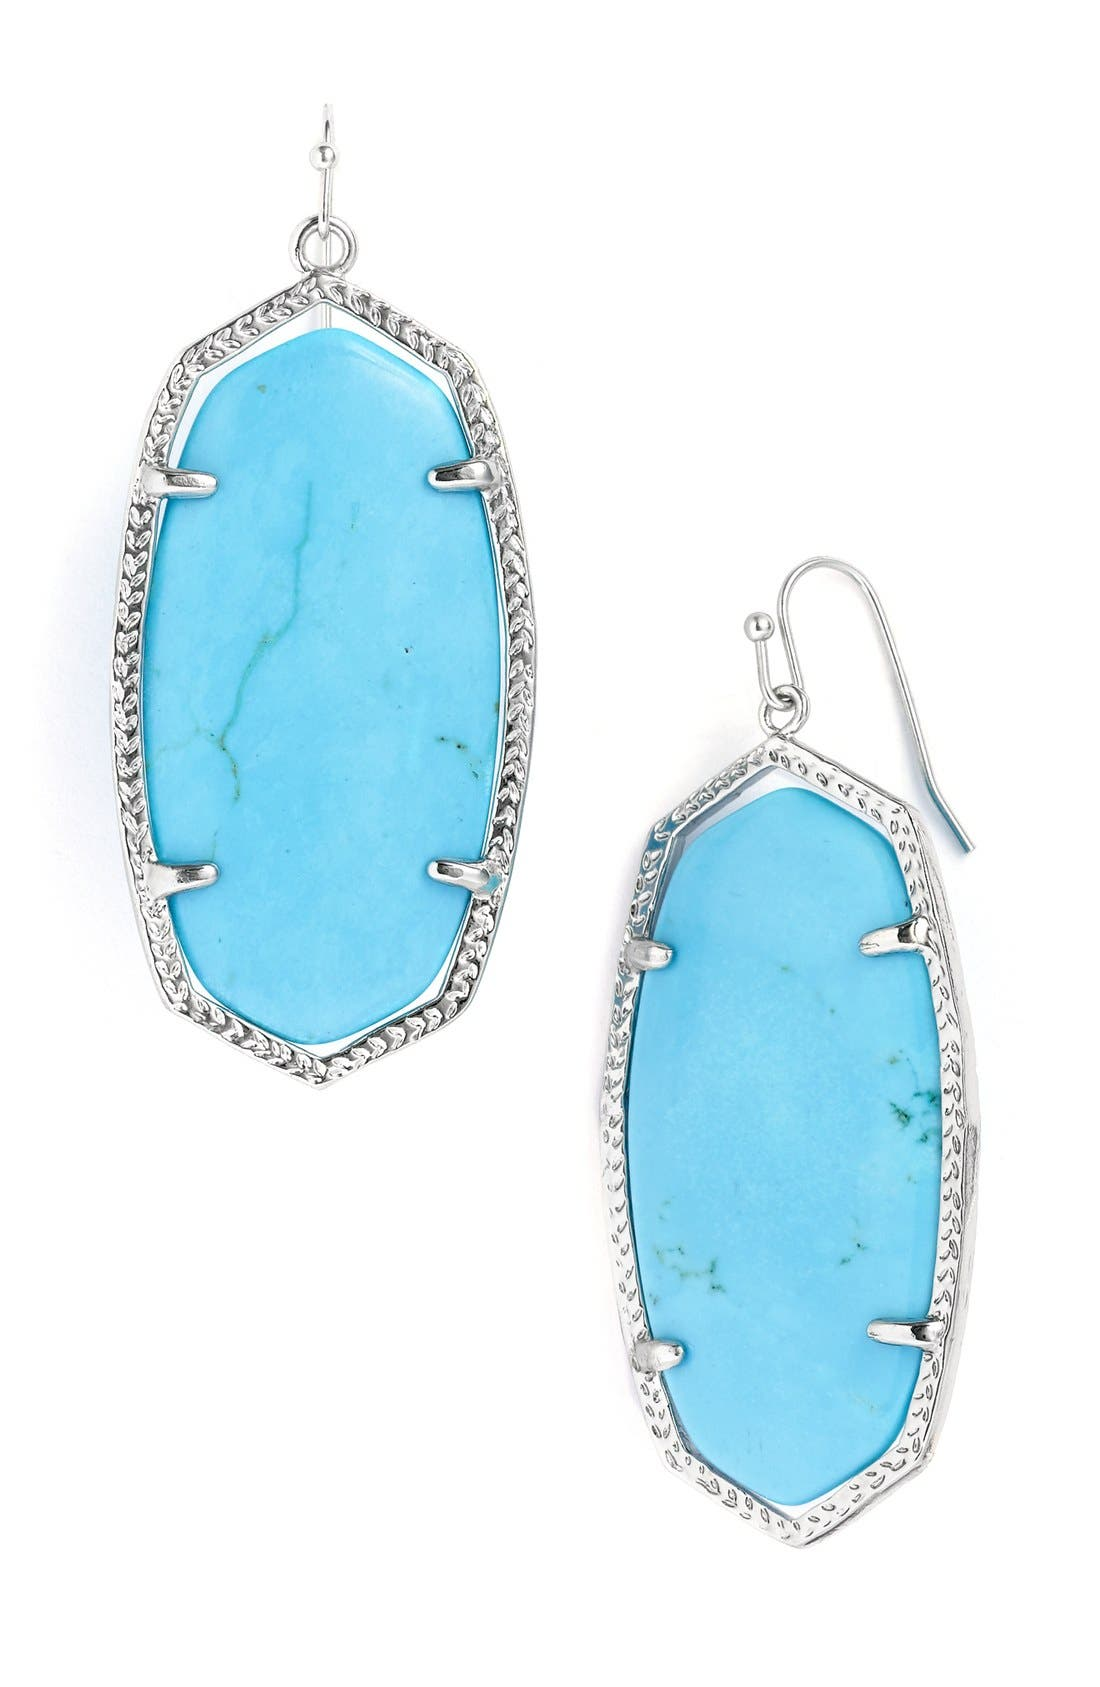 Kendra Scott Danielle Oval Statement Earrings Nordstrom